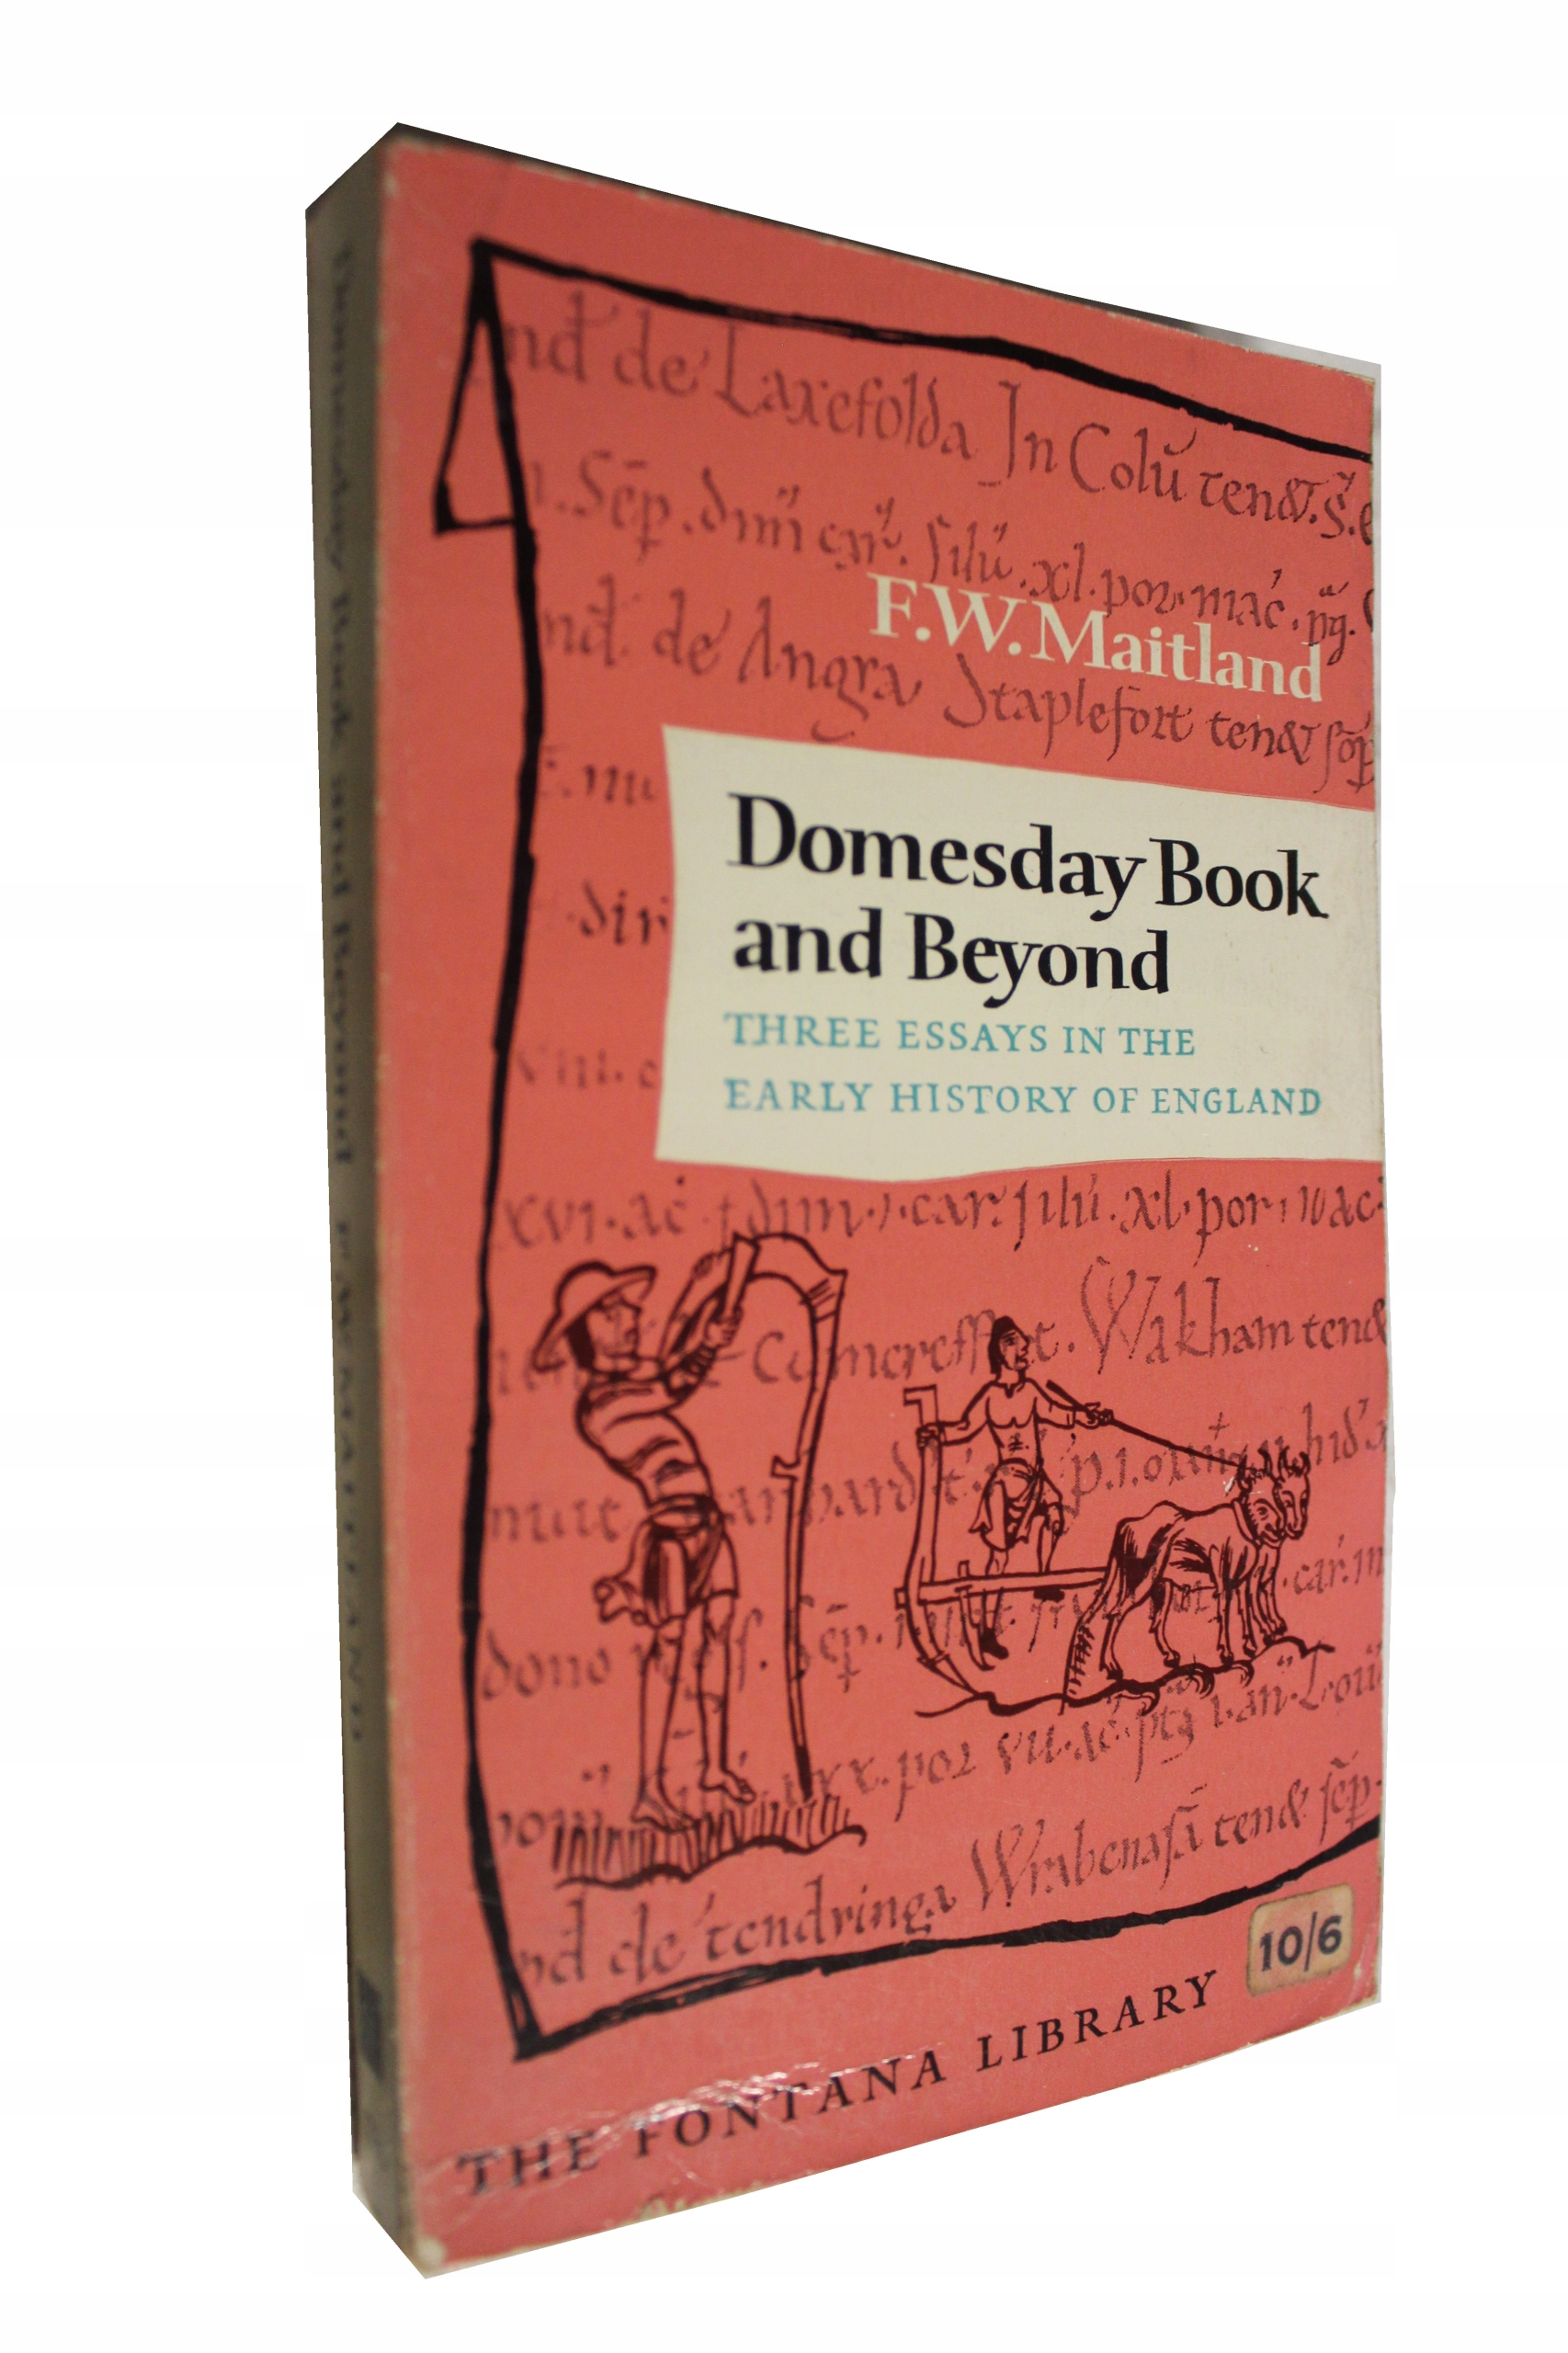 Frederic William Maitland Domesday Book and Beyond